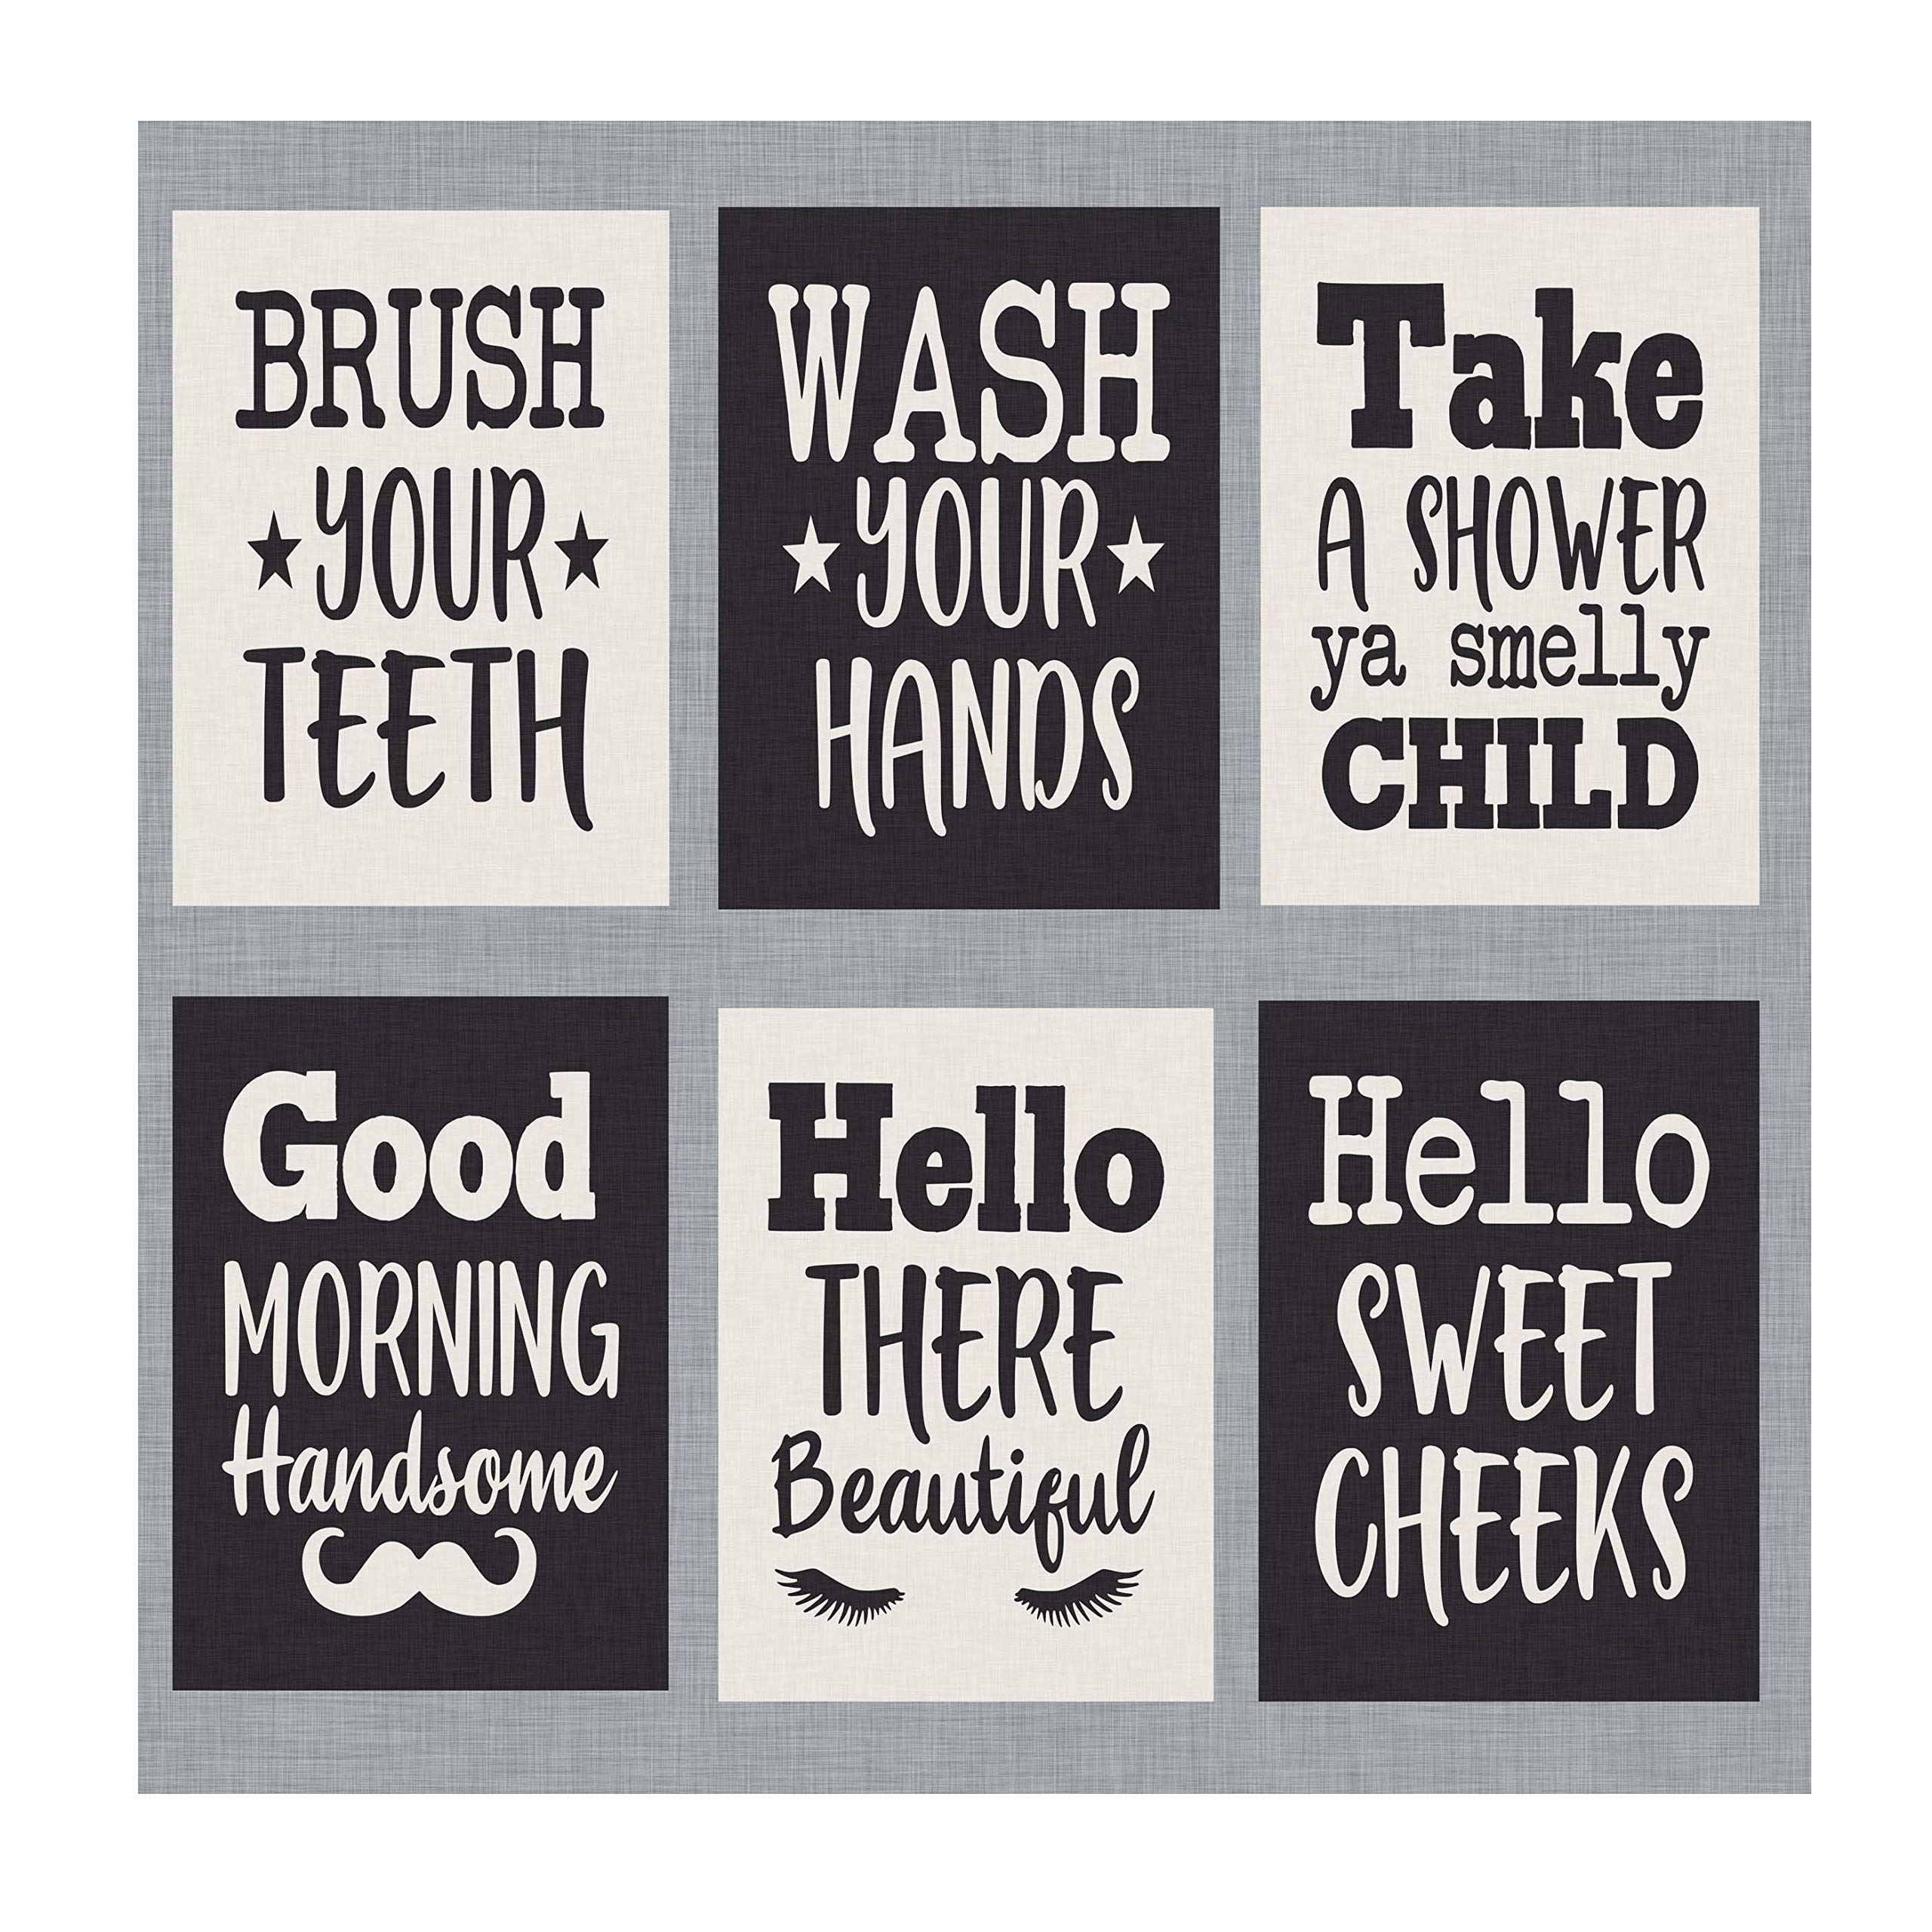 Amazon Com Simply Remarkable Bathroom Prints Set Of Six Decorate Your Bathroom With These 5 X 7 Prints Funny And Humorous Bathroom And Home Decor 5 X 7 Set 1 Posters